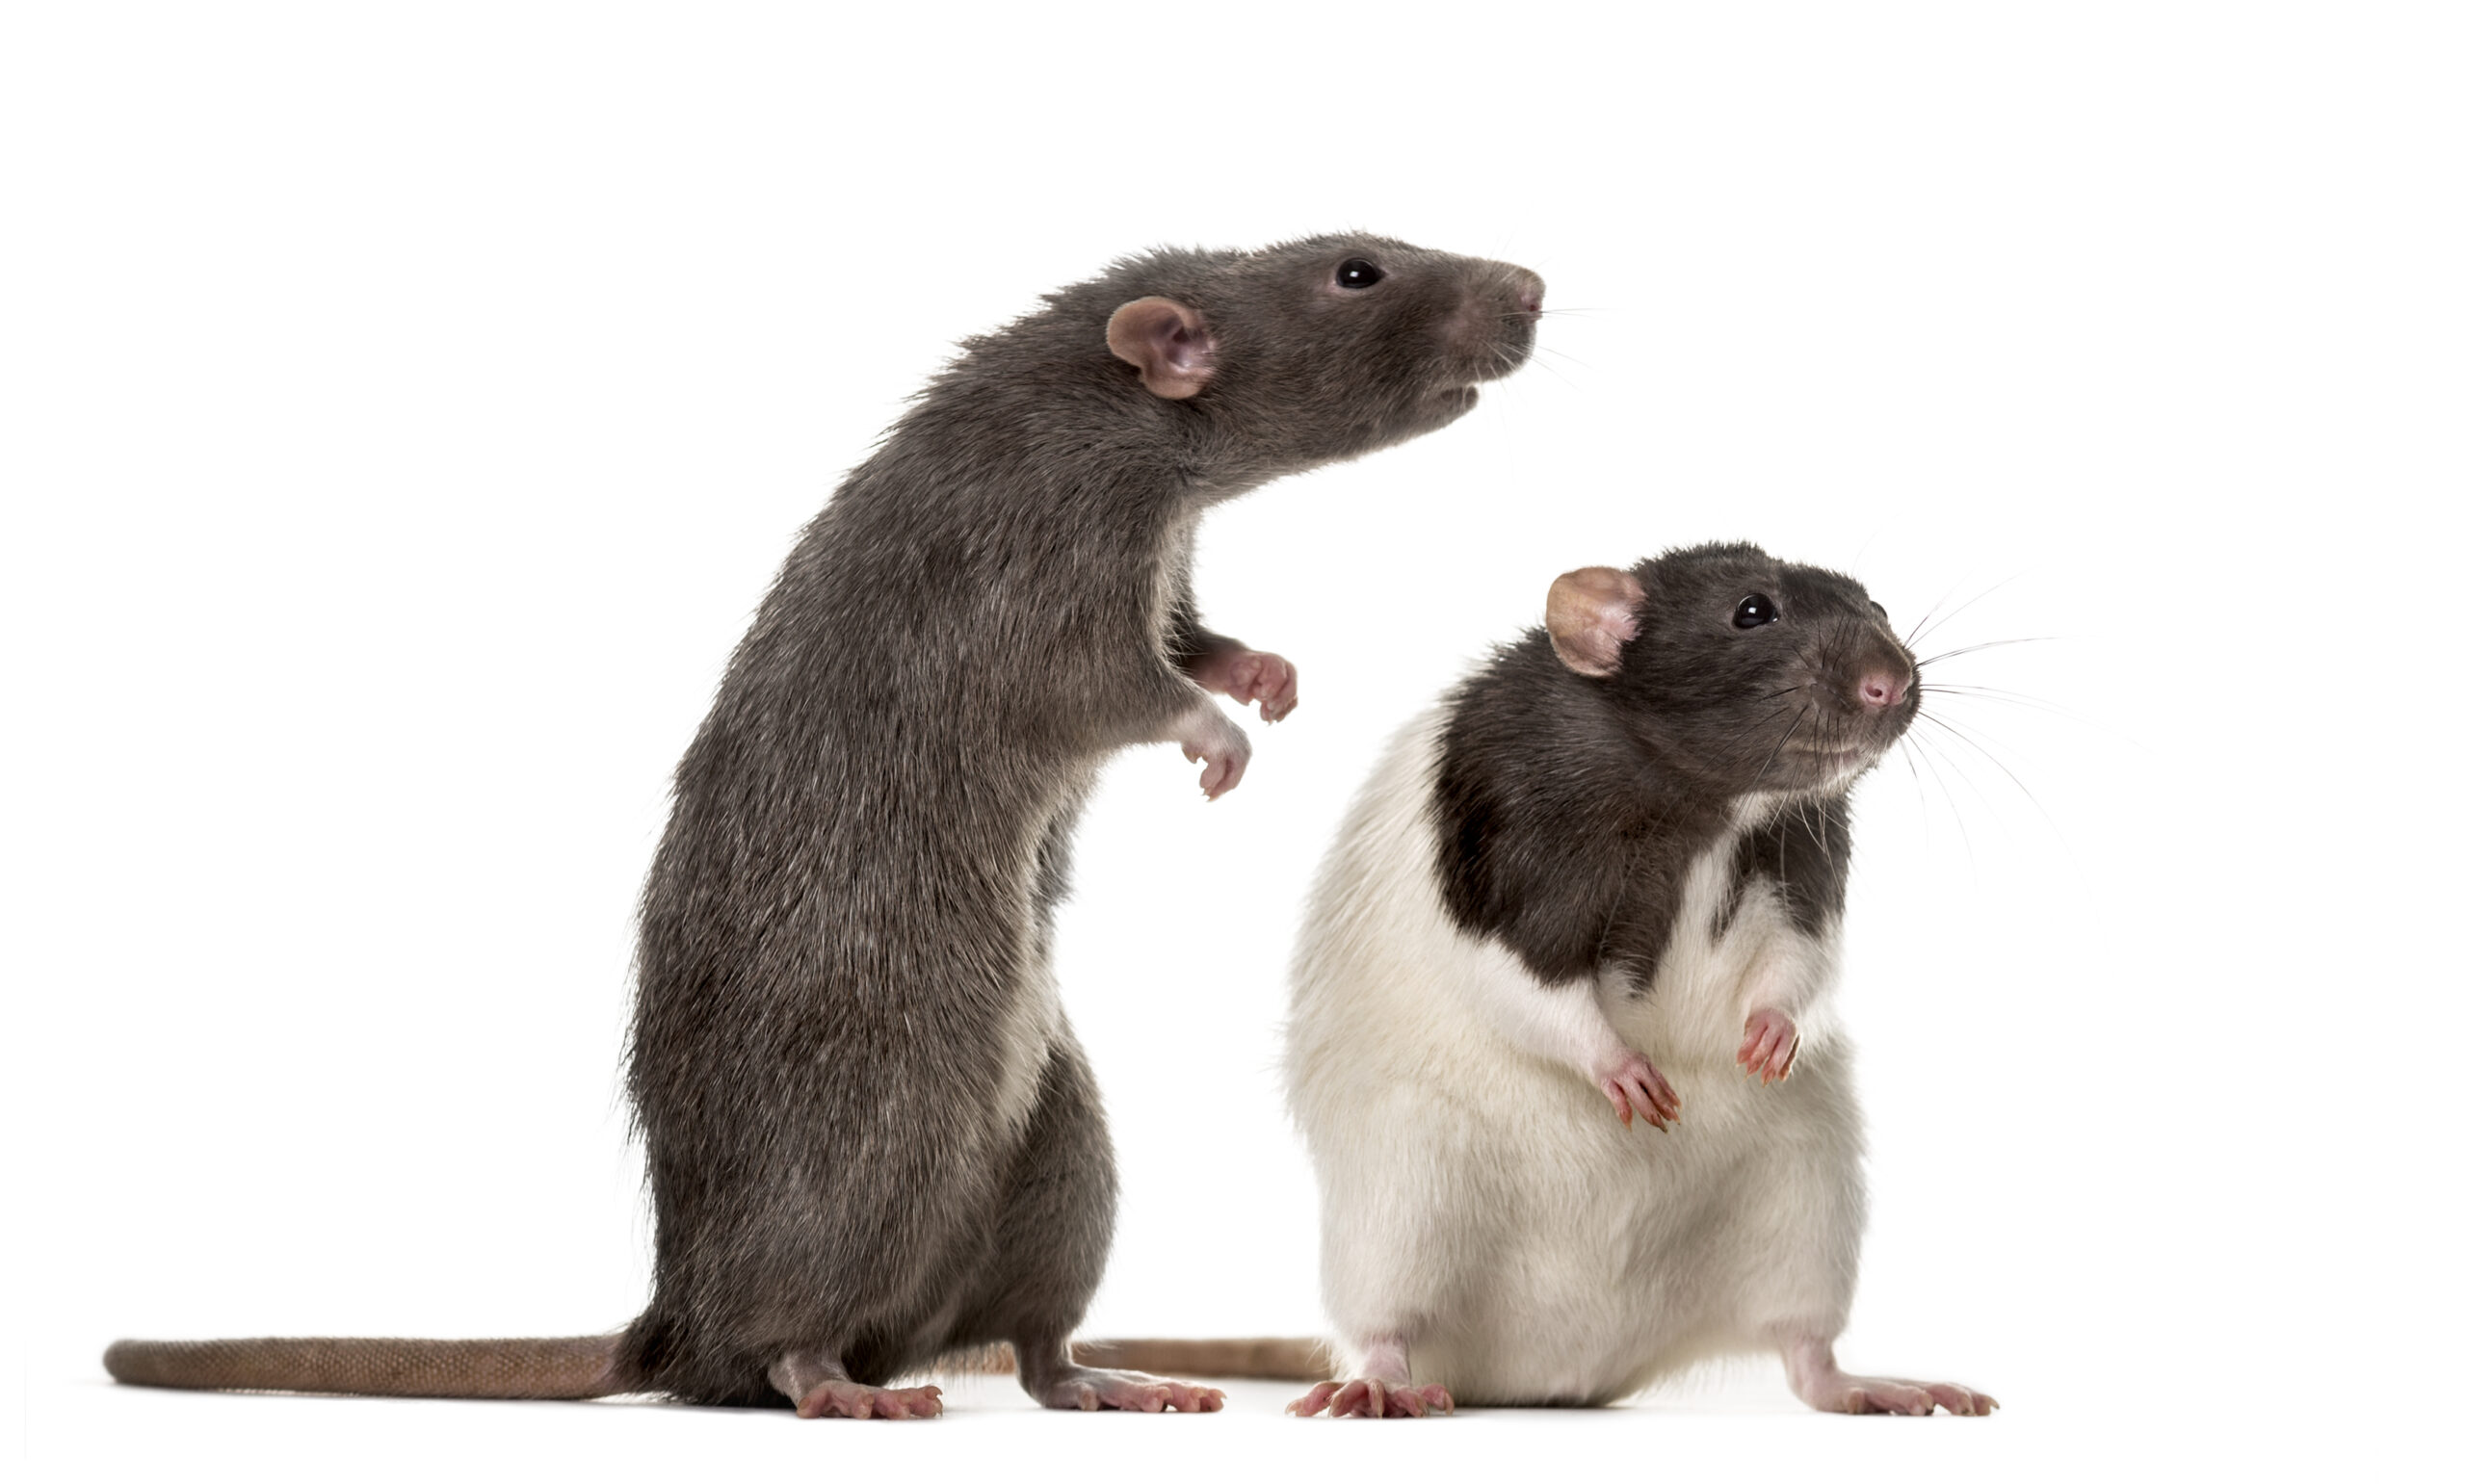 1606, 1606, Two attentive Rats standing , isolated on white, iStock-823858046-scaled.jpg, 301479, https://essentialys.com/wp-content/uploads/2021/02/iStock-823858046-scaled.jpg, https://essentialys.com/lutte-prevention-rongeurs/two-attentive-rats-standing-isolated-on-white/, , 6, , , two-attentive-rats-standing-isolated-on-white, inherit, 1589, 2021-02-16 11:13:11, 2021-02-24 08:12:57, 0, image/jpeg, image, jpeg, https://essentialys.com/wp-includes/images/media/default.png, 2560, 1541, Array